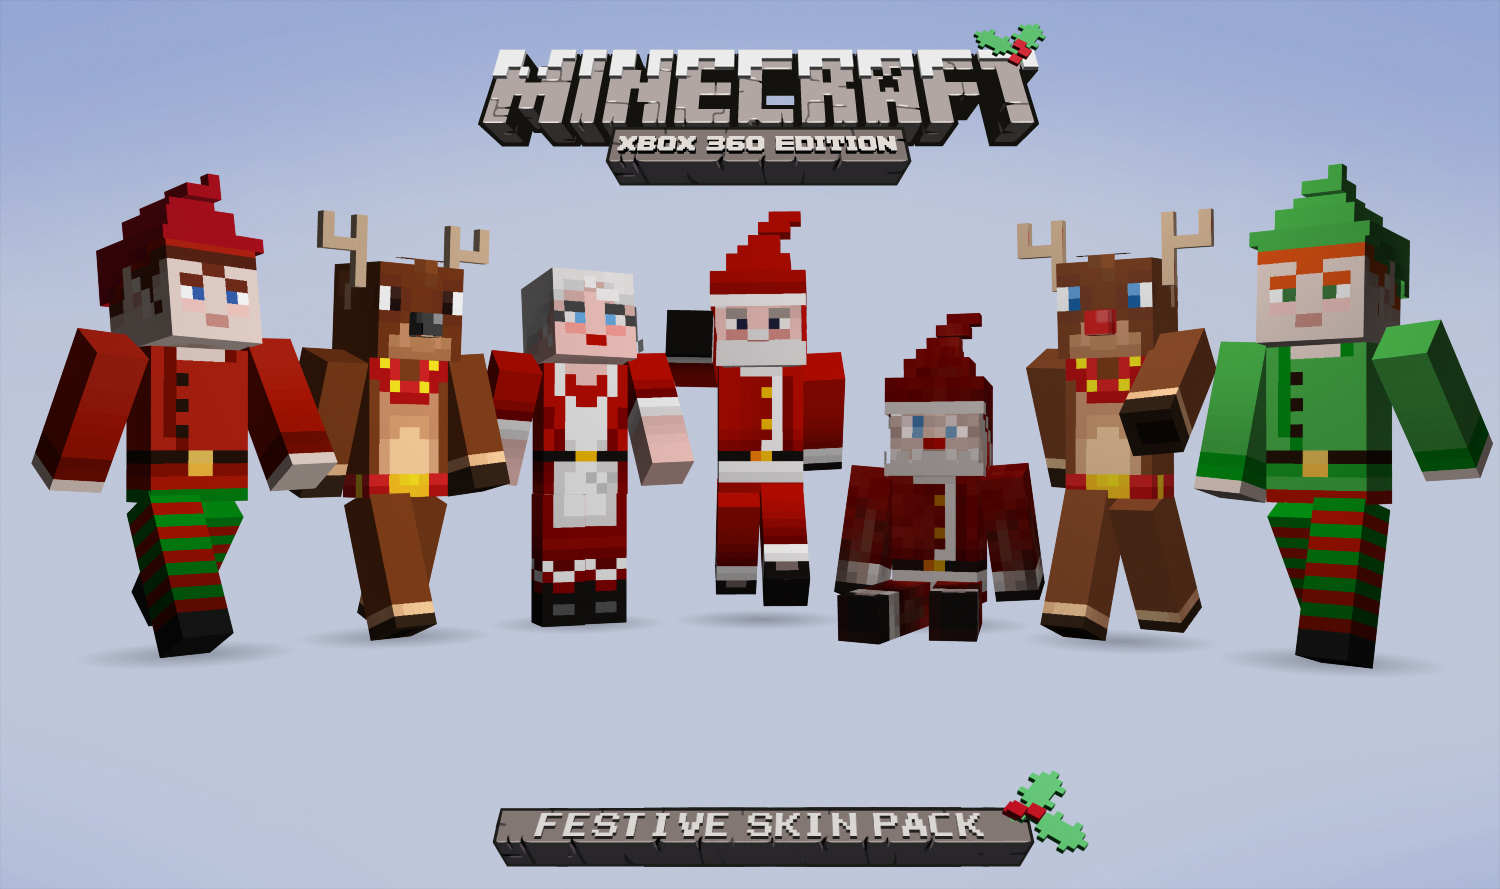 Festive skins come to minecraft xbox 360 edition just for Mine craft for xbox